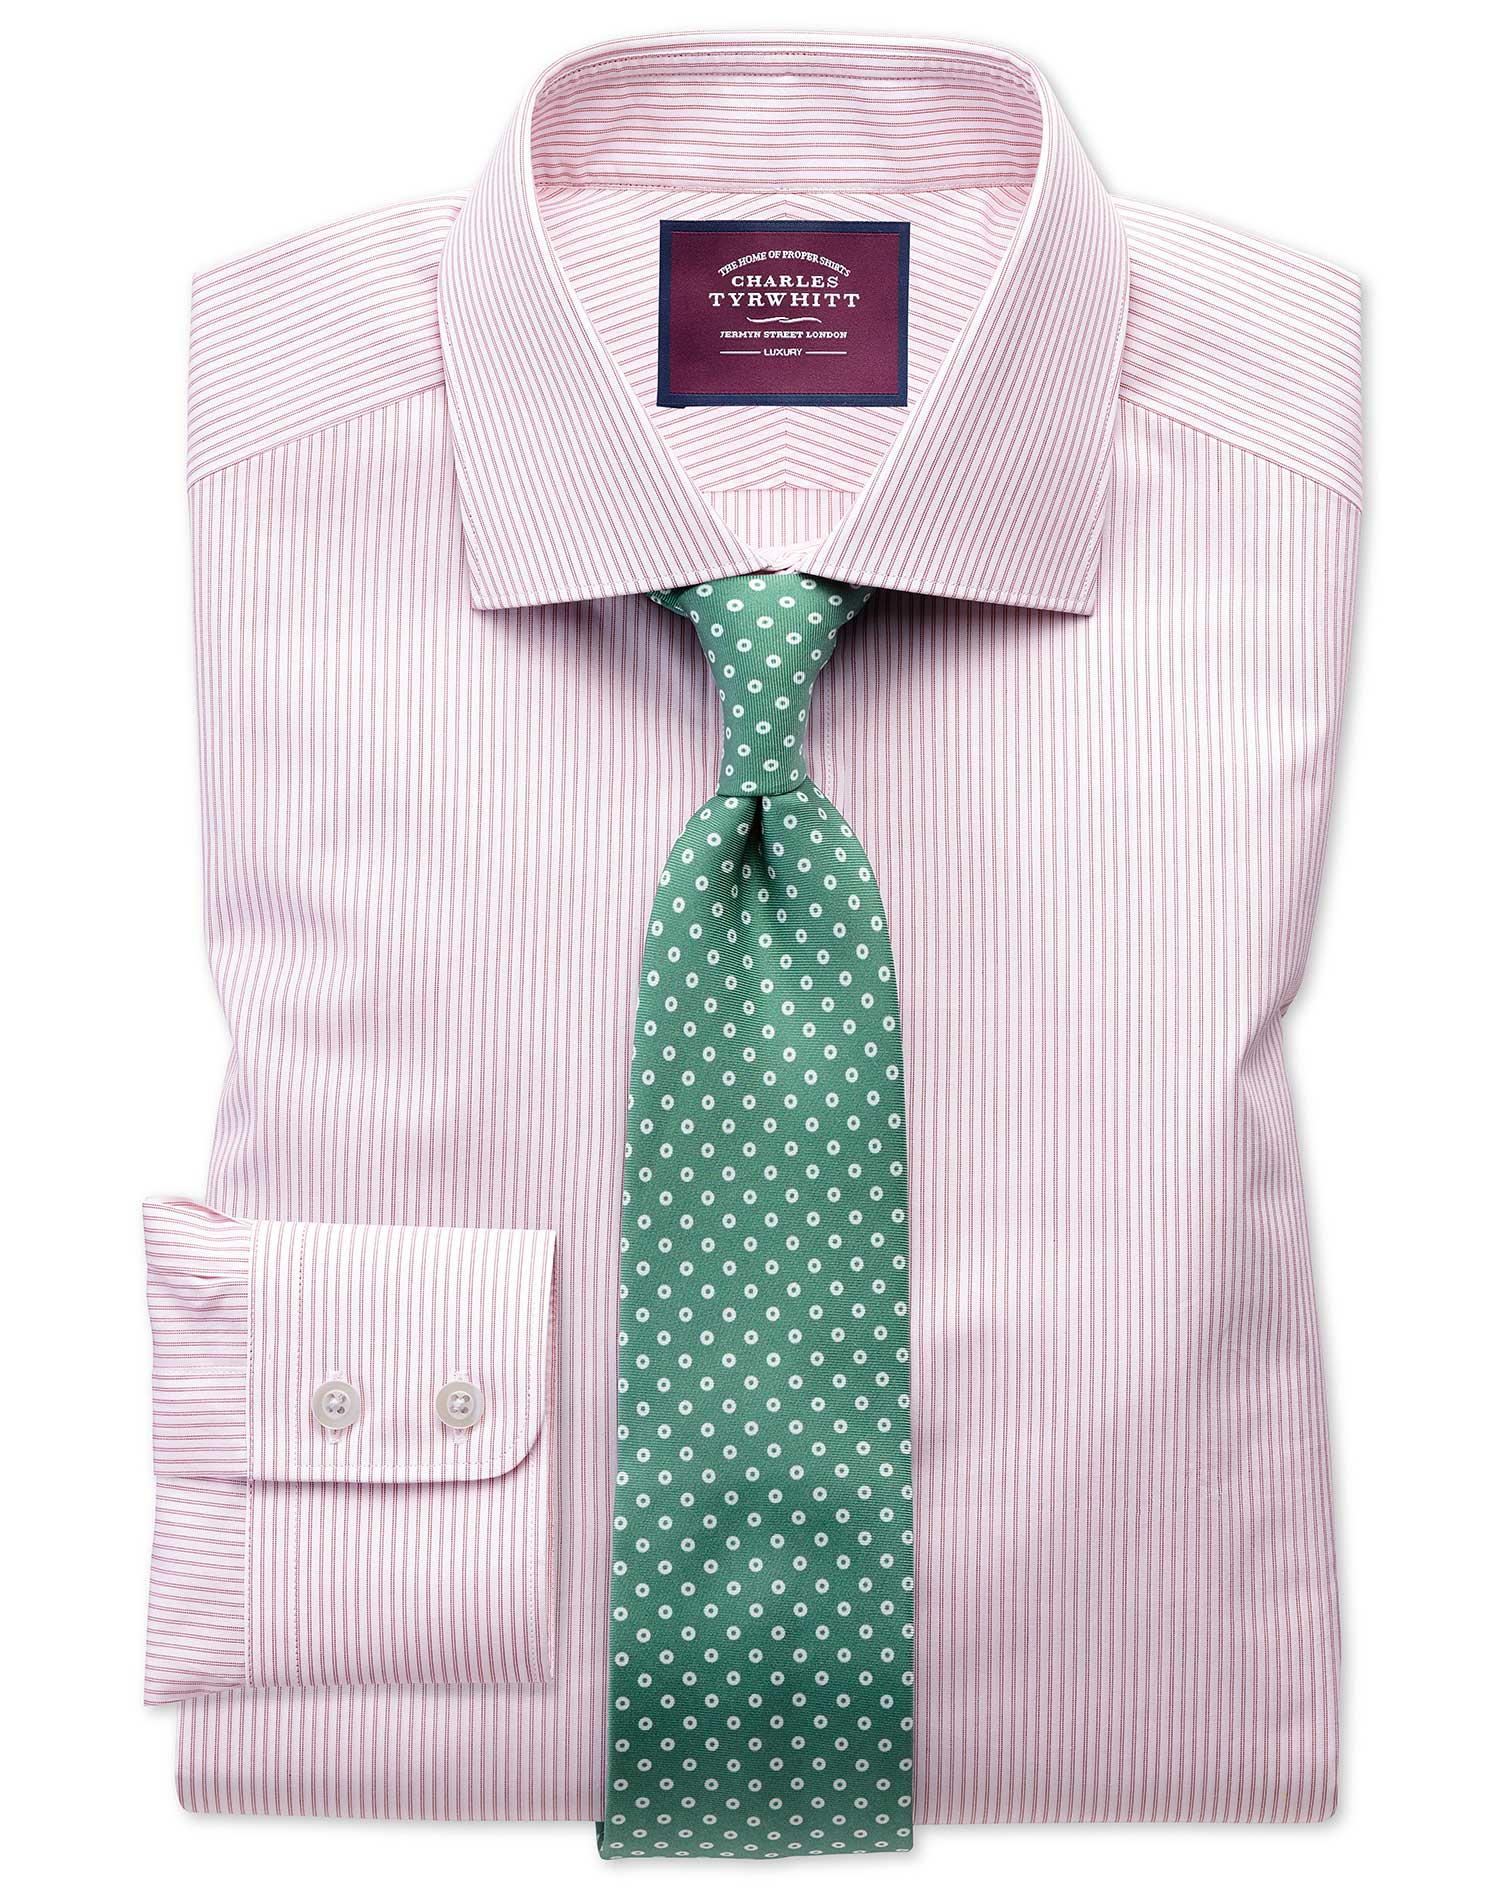 Classic Fit Semi-Cutaway Luxury Poplin Red and White Egyptian Cotton Formal Shirt Single Cuff Size 1